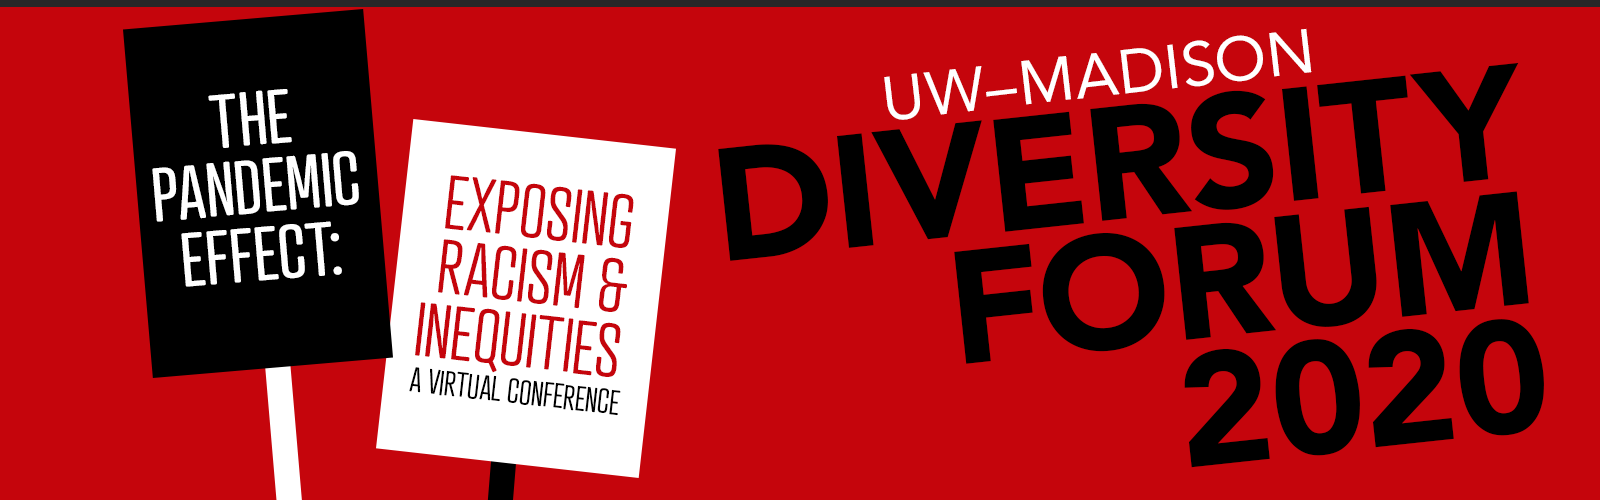 "Poster for the 2020 UW–Madison Diversity Forum featuring illustrated picket signs with the title, ""The Pandemic Effect: Exposing Racism & Inequities"" written on them."